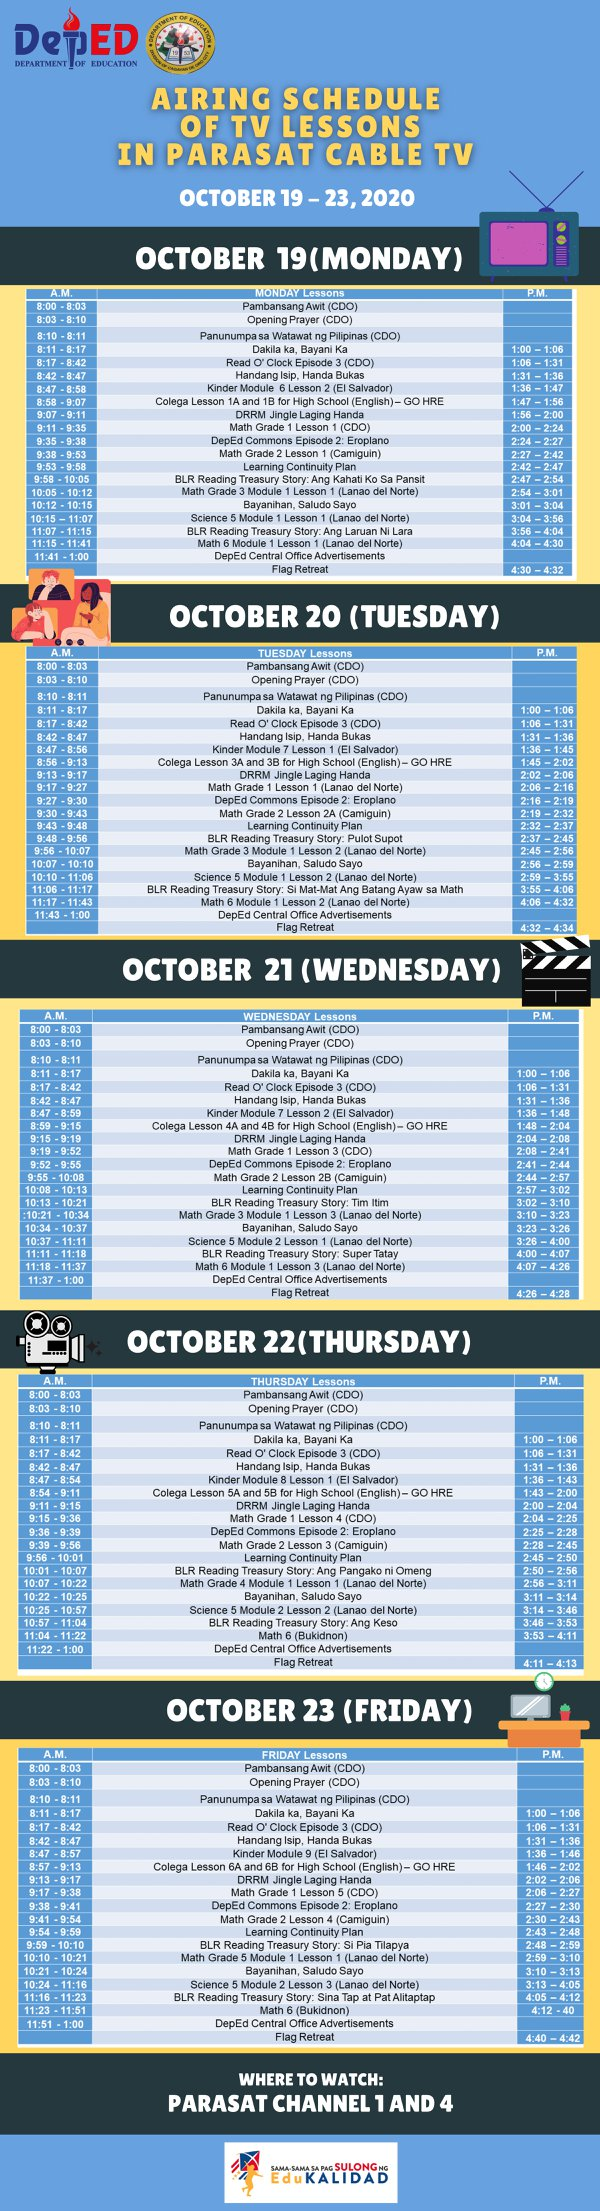 parasat-cable-sched-3rd-week